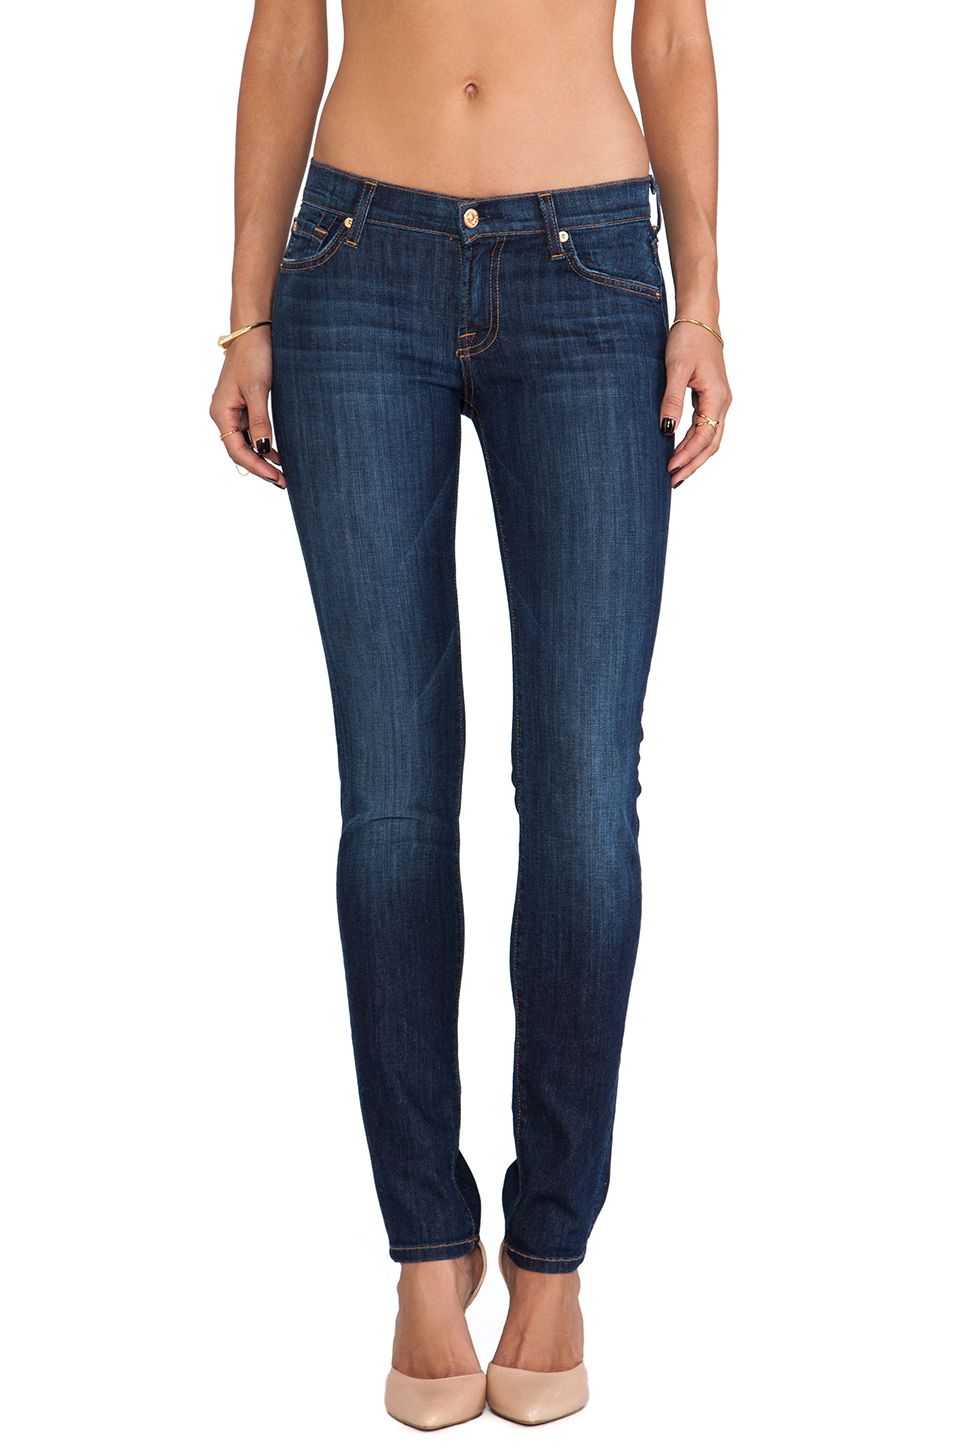 7 For All Mankind Roxanne in Spring Night